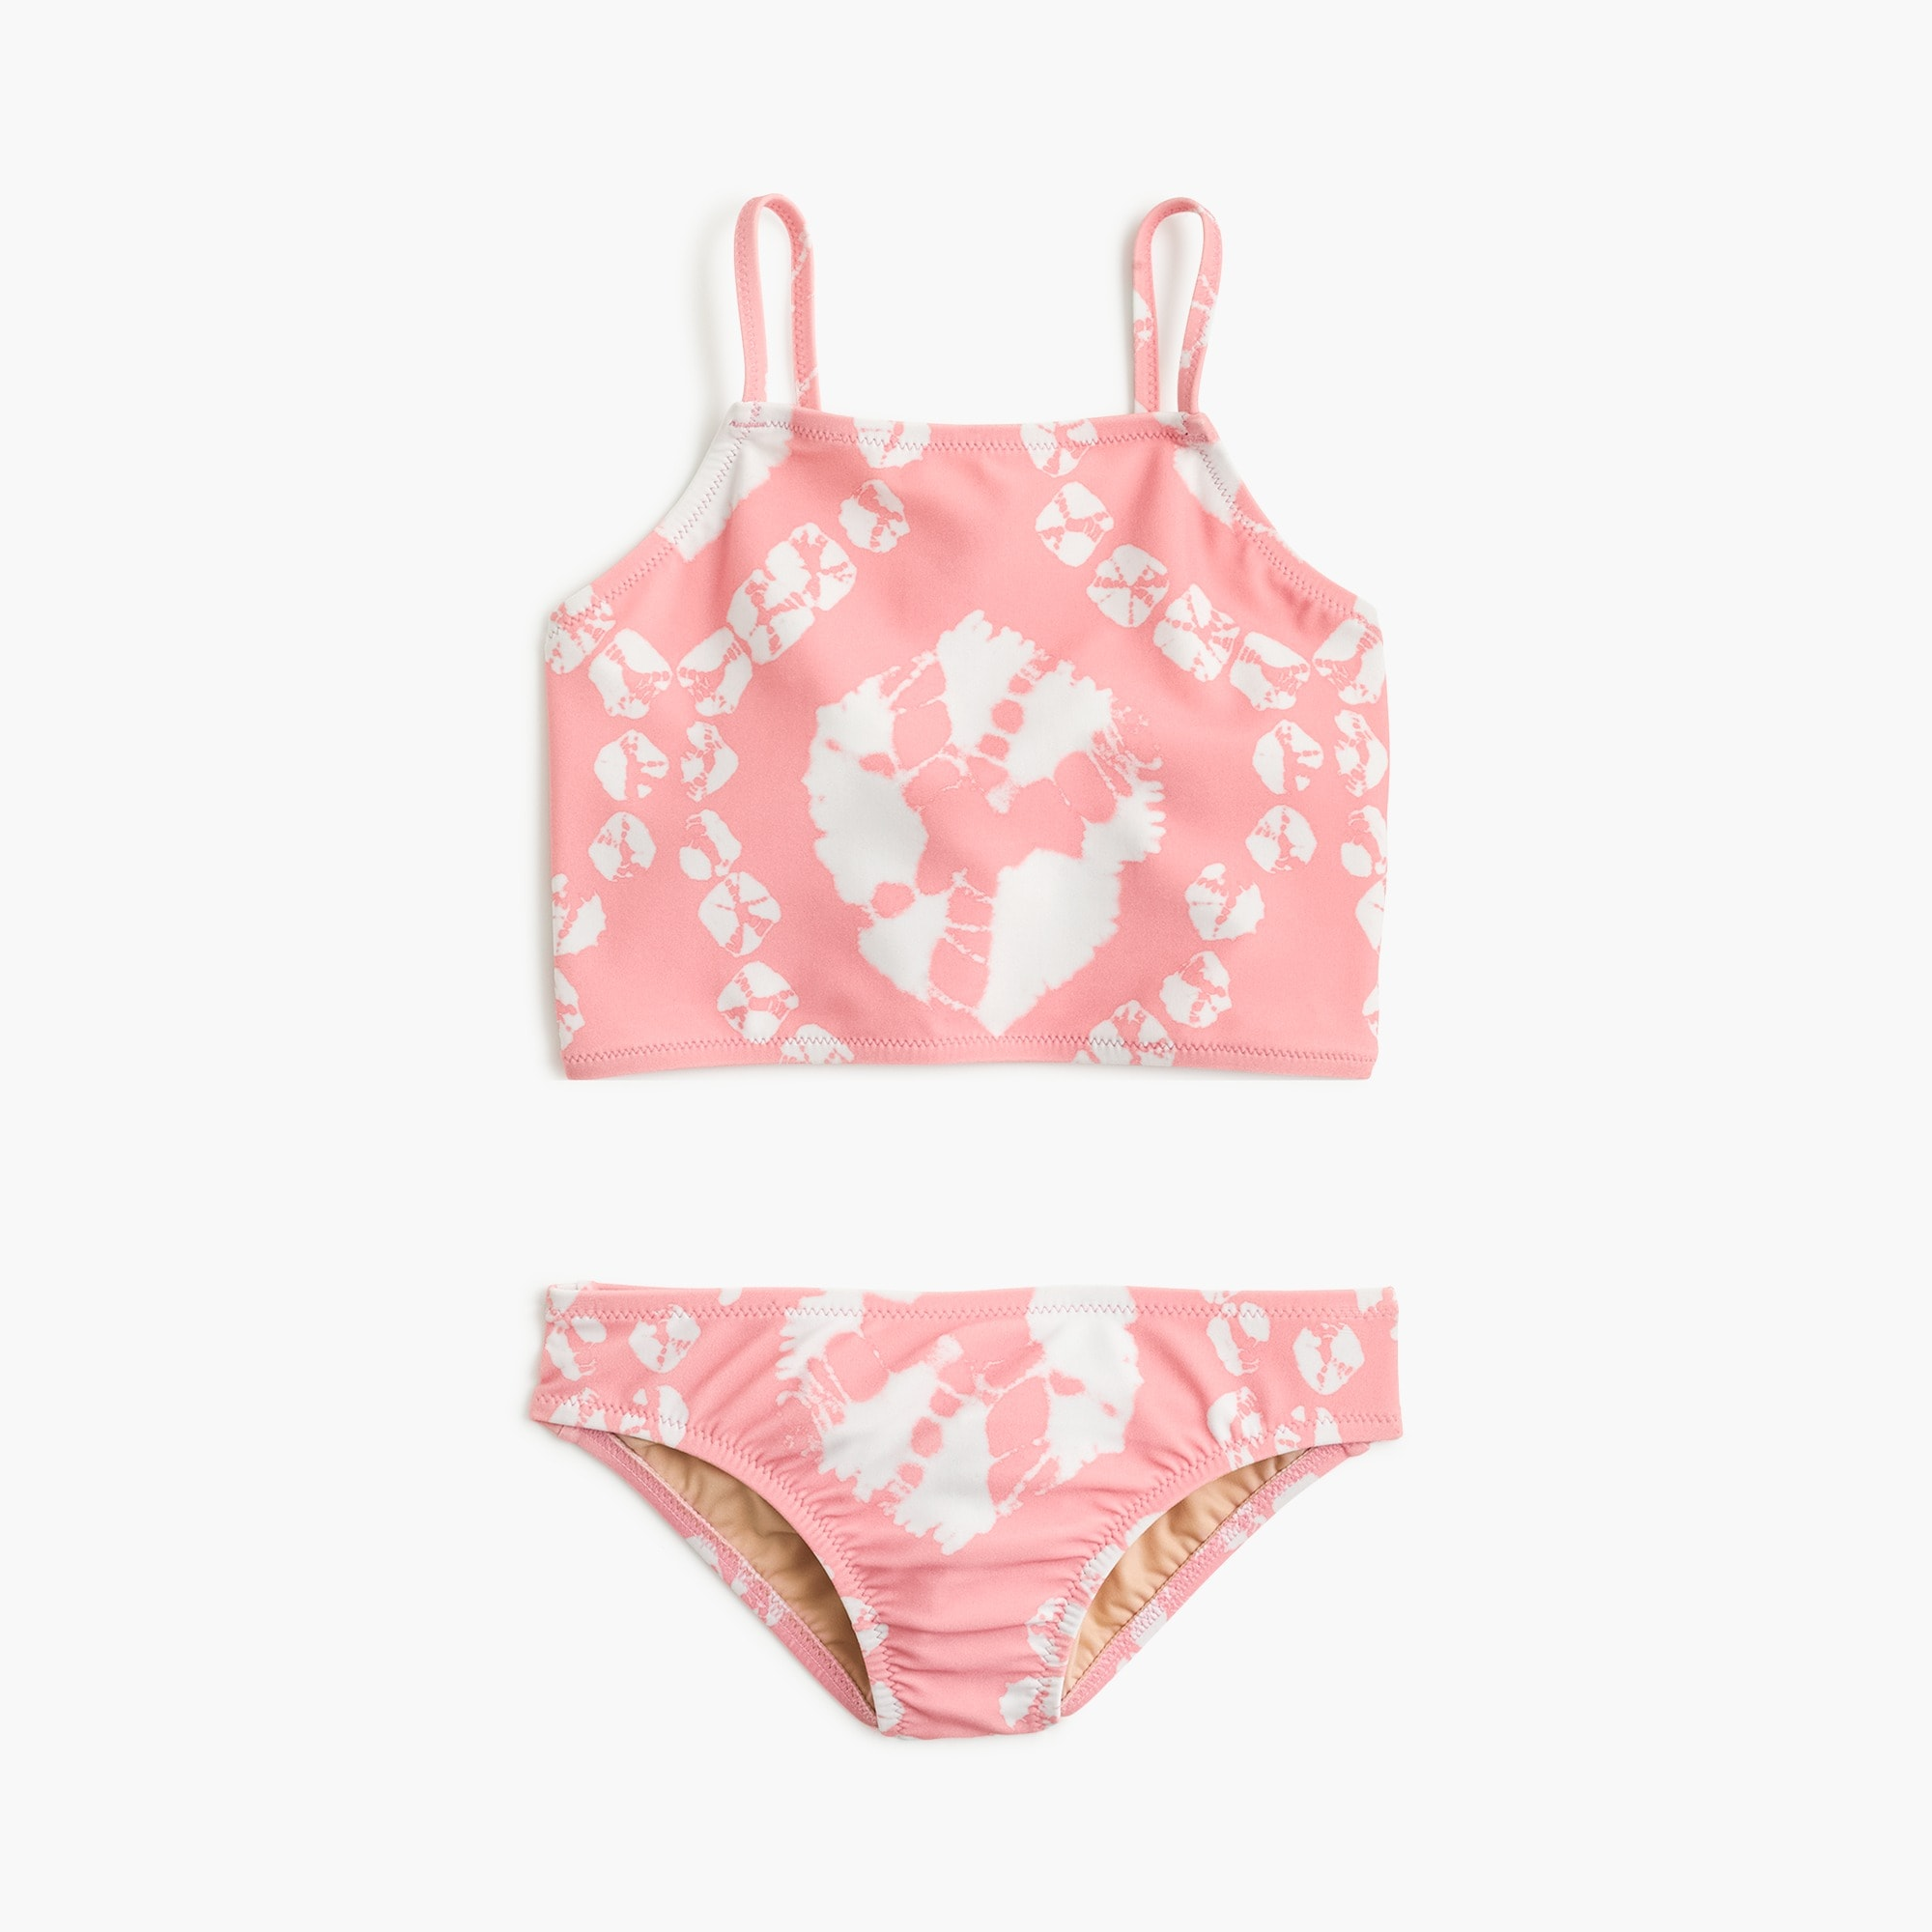 girls Girls' cropped tankini set in pink tie-dye